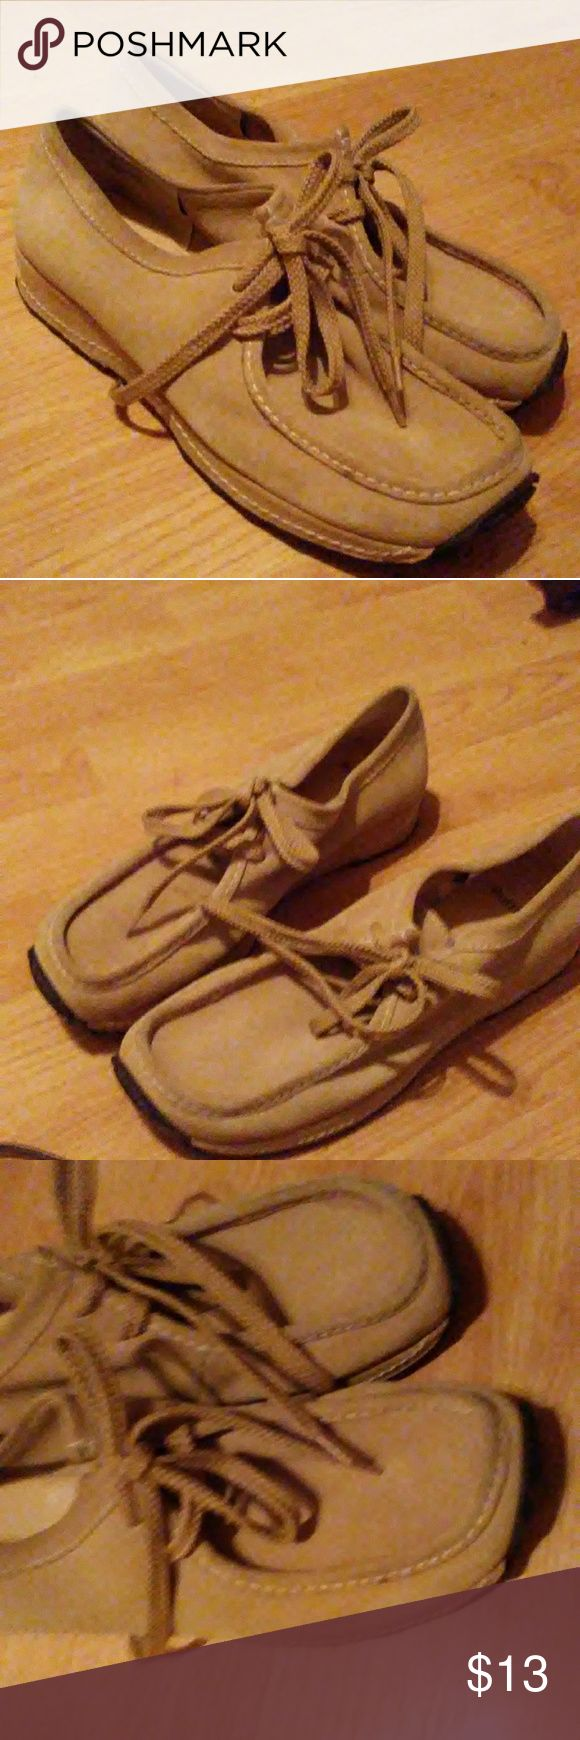 """Ruff Hewn """"Wallabee"""" Style Genuine Suede Shoes Very comfortable...great condition. If you like the comfort of wearing moccasins..you will love these soft suede leather shoes too. Ruff Hewn Shoes Flats & Loafers"""